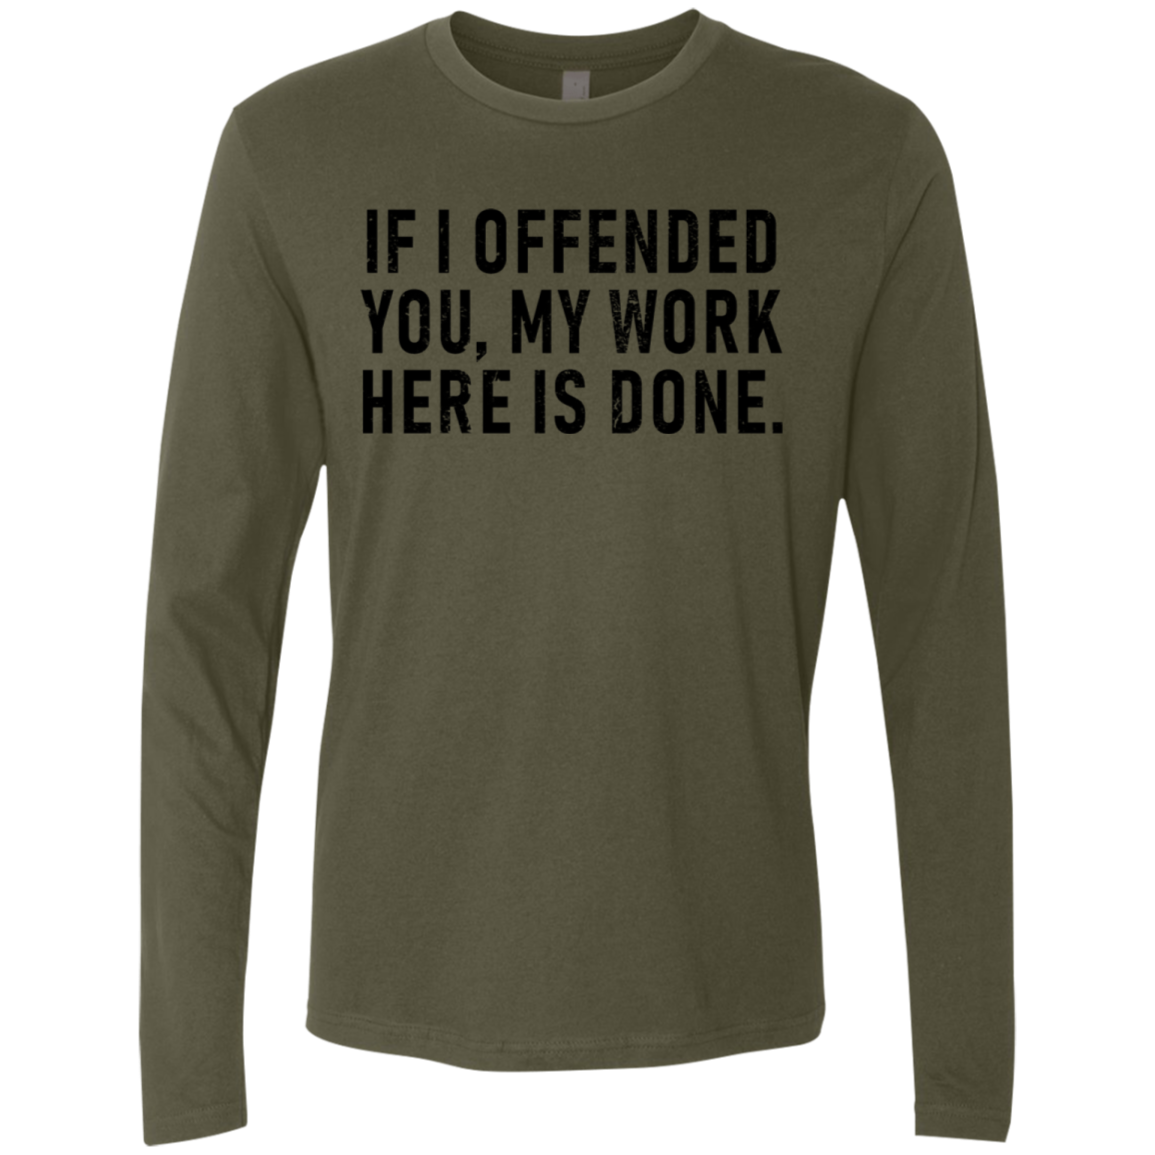 Isf I Offend You My Work Here Is Done Men's Long Sleeve Tee